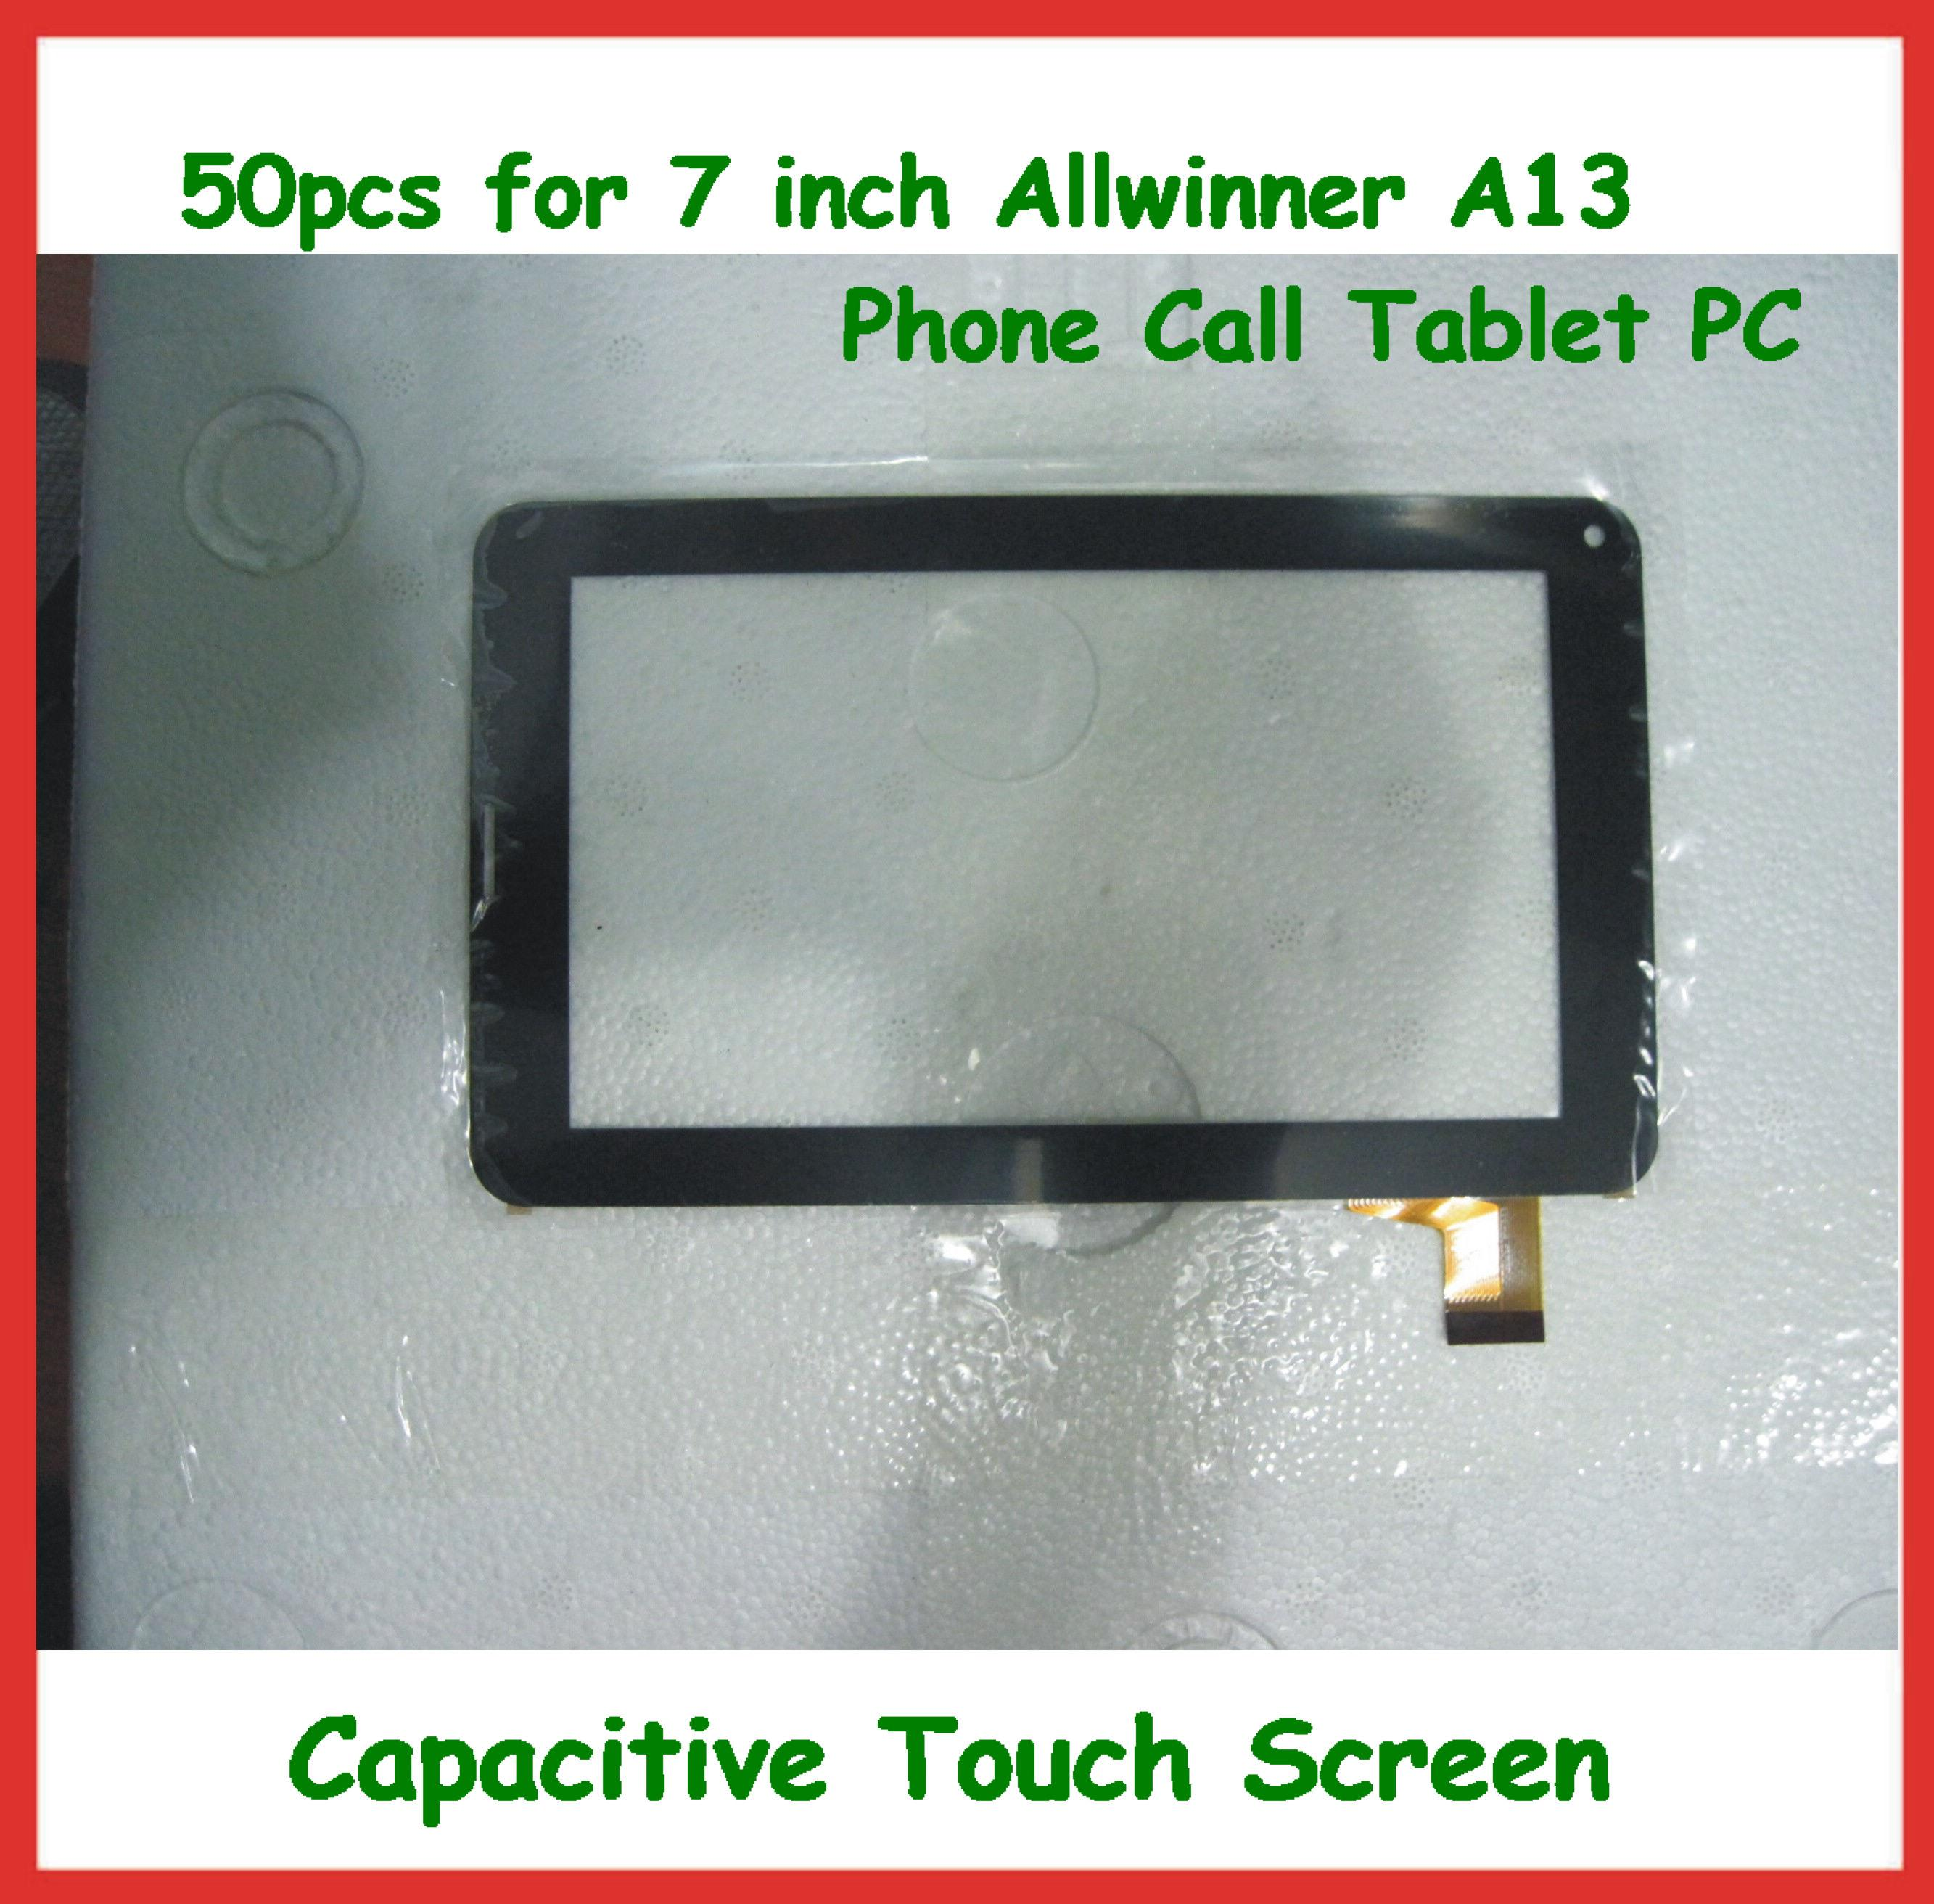 50pcs 7 inch Replacement Capacitive Touch Screen with Glass Digitizer for 7  inch 86V Allwinner A13 Phone Call Tablet PC DHL Free Shipping